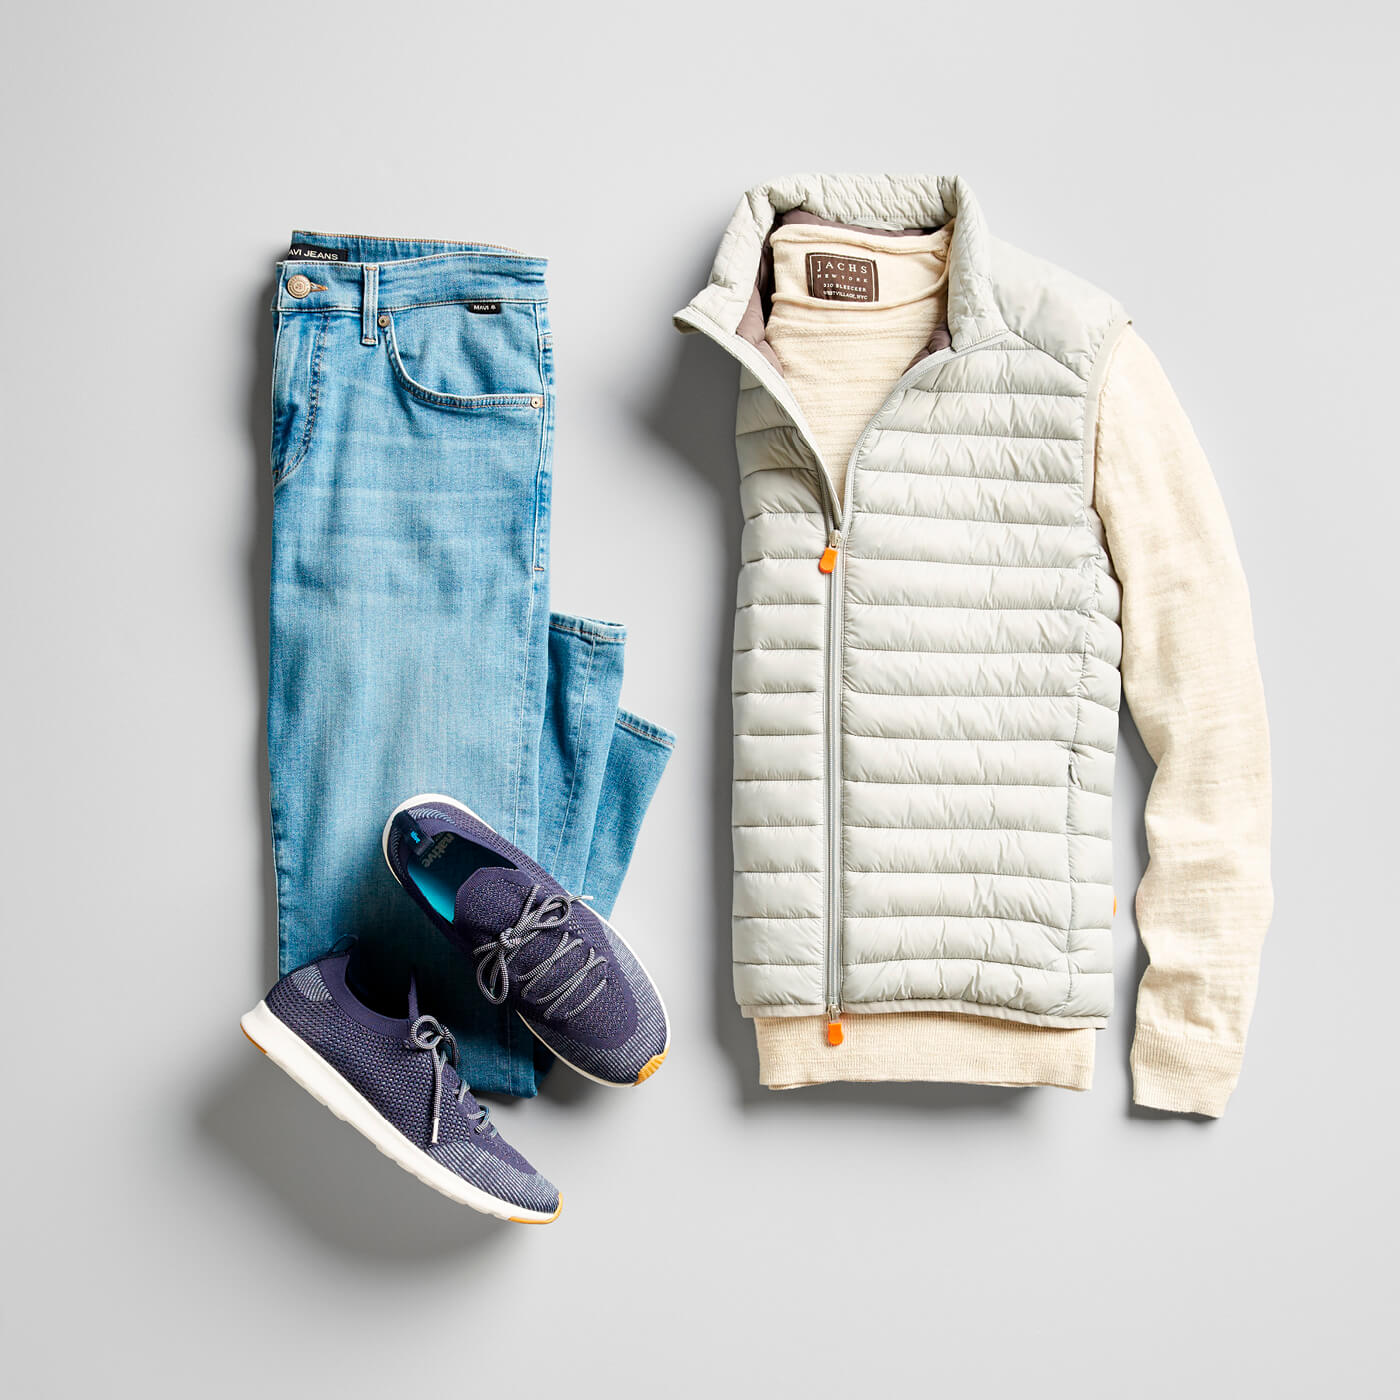 light wash jeans and puffer vest